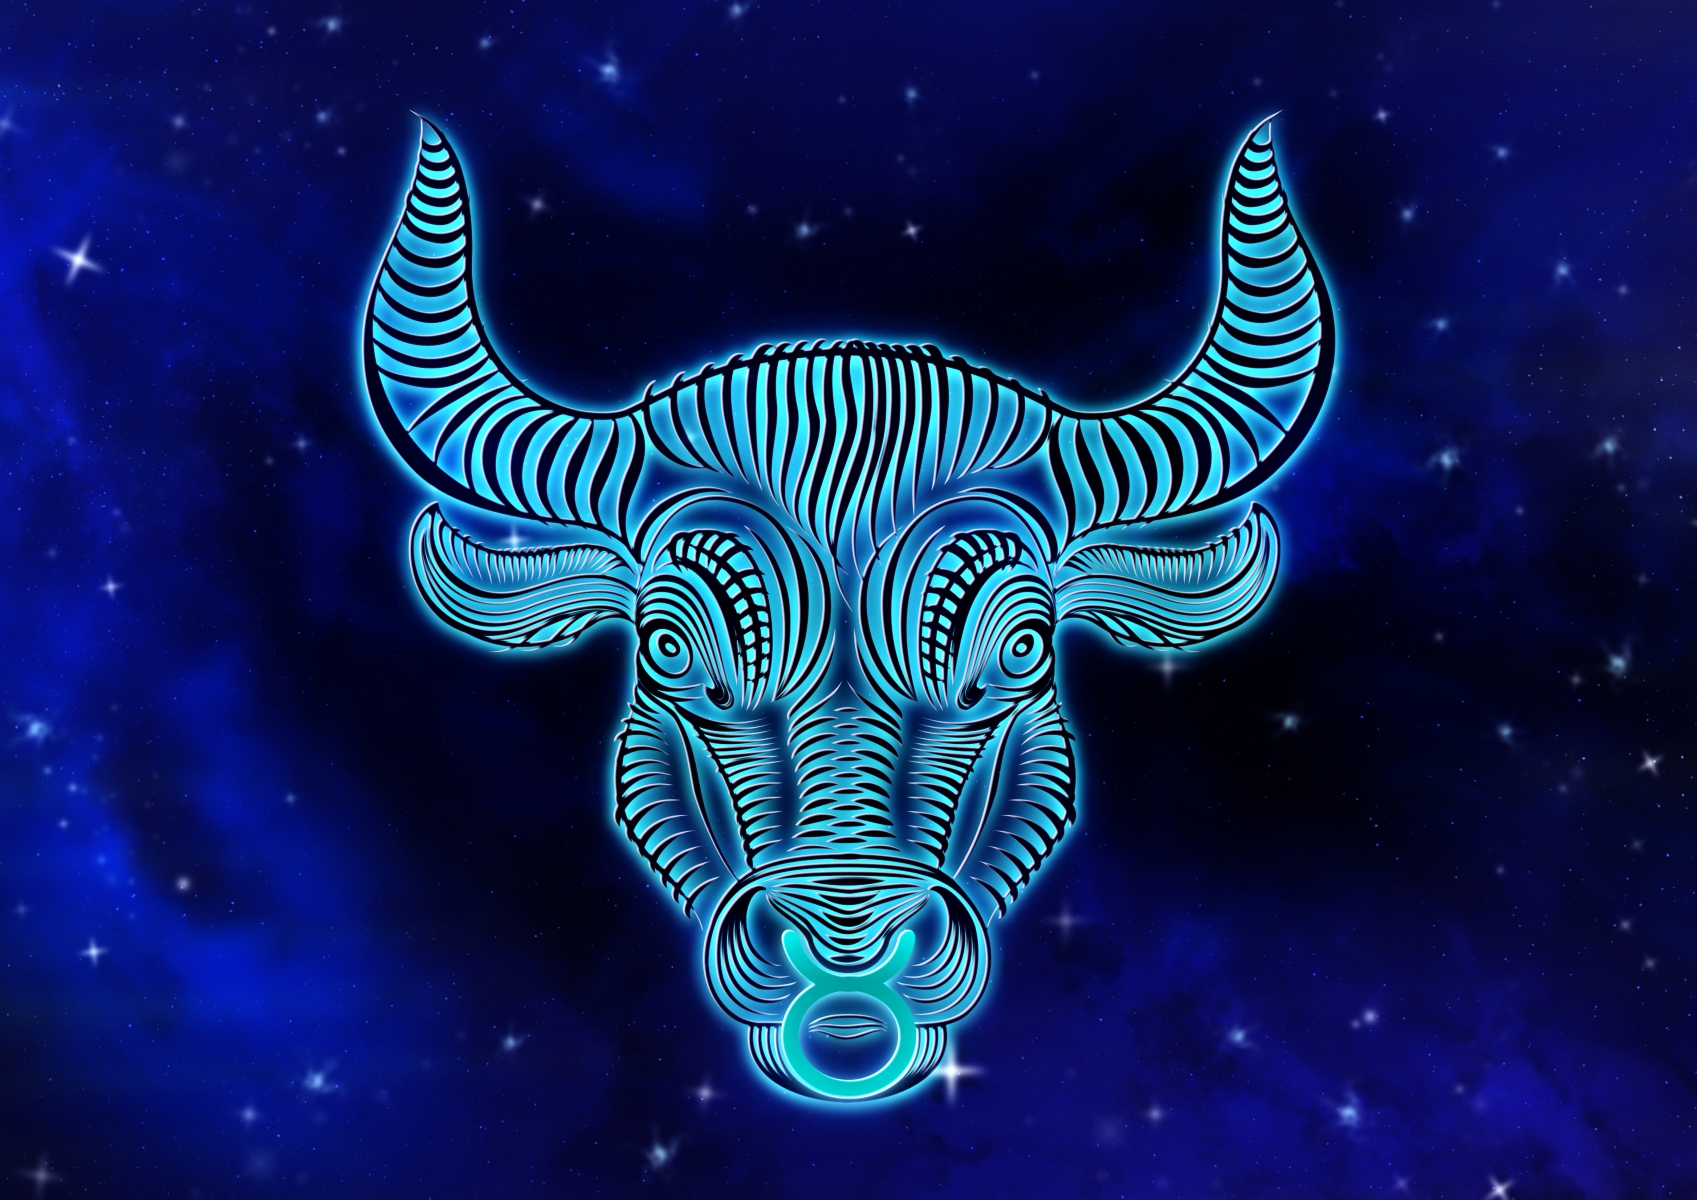 Astrological sign Taurus - Taurus in noble blue